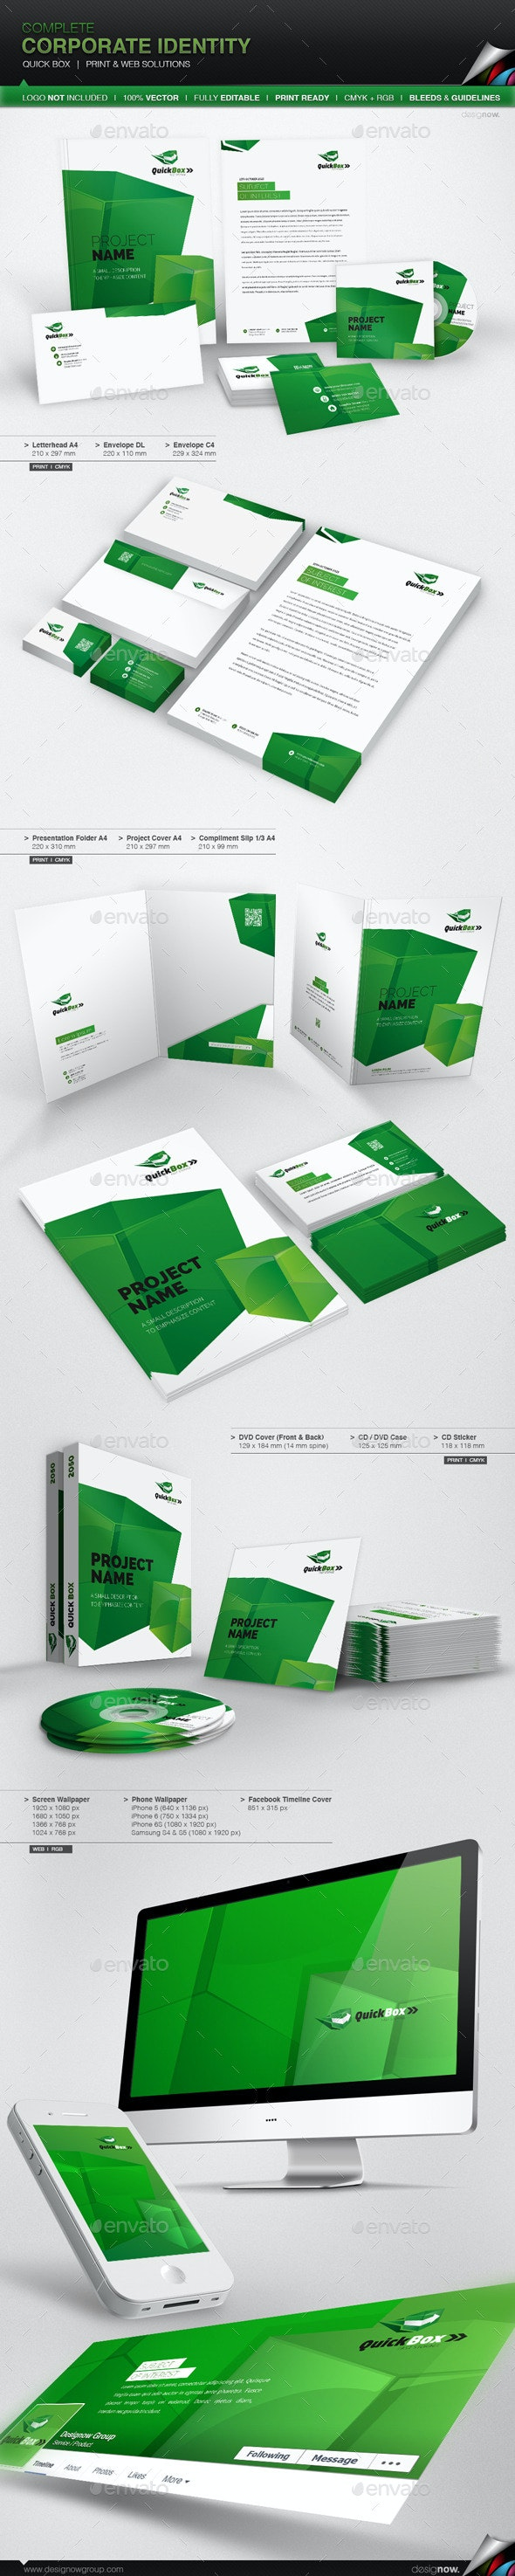 Corporate Identity - Quick Box - Stationery Print Templates